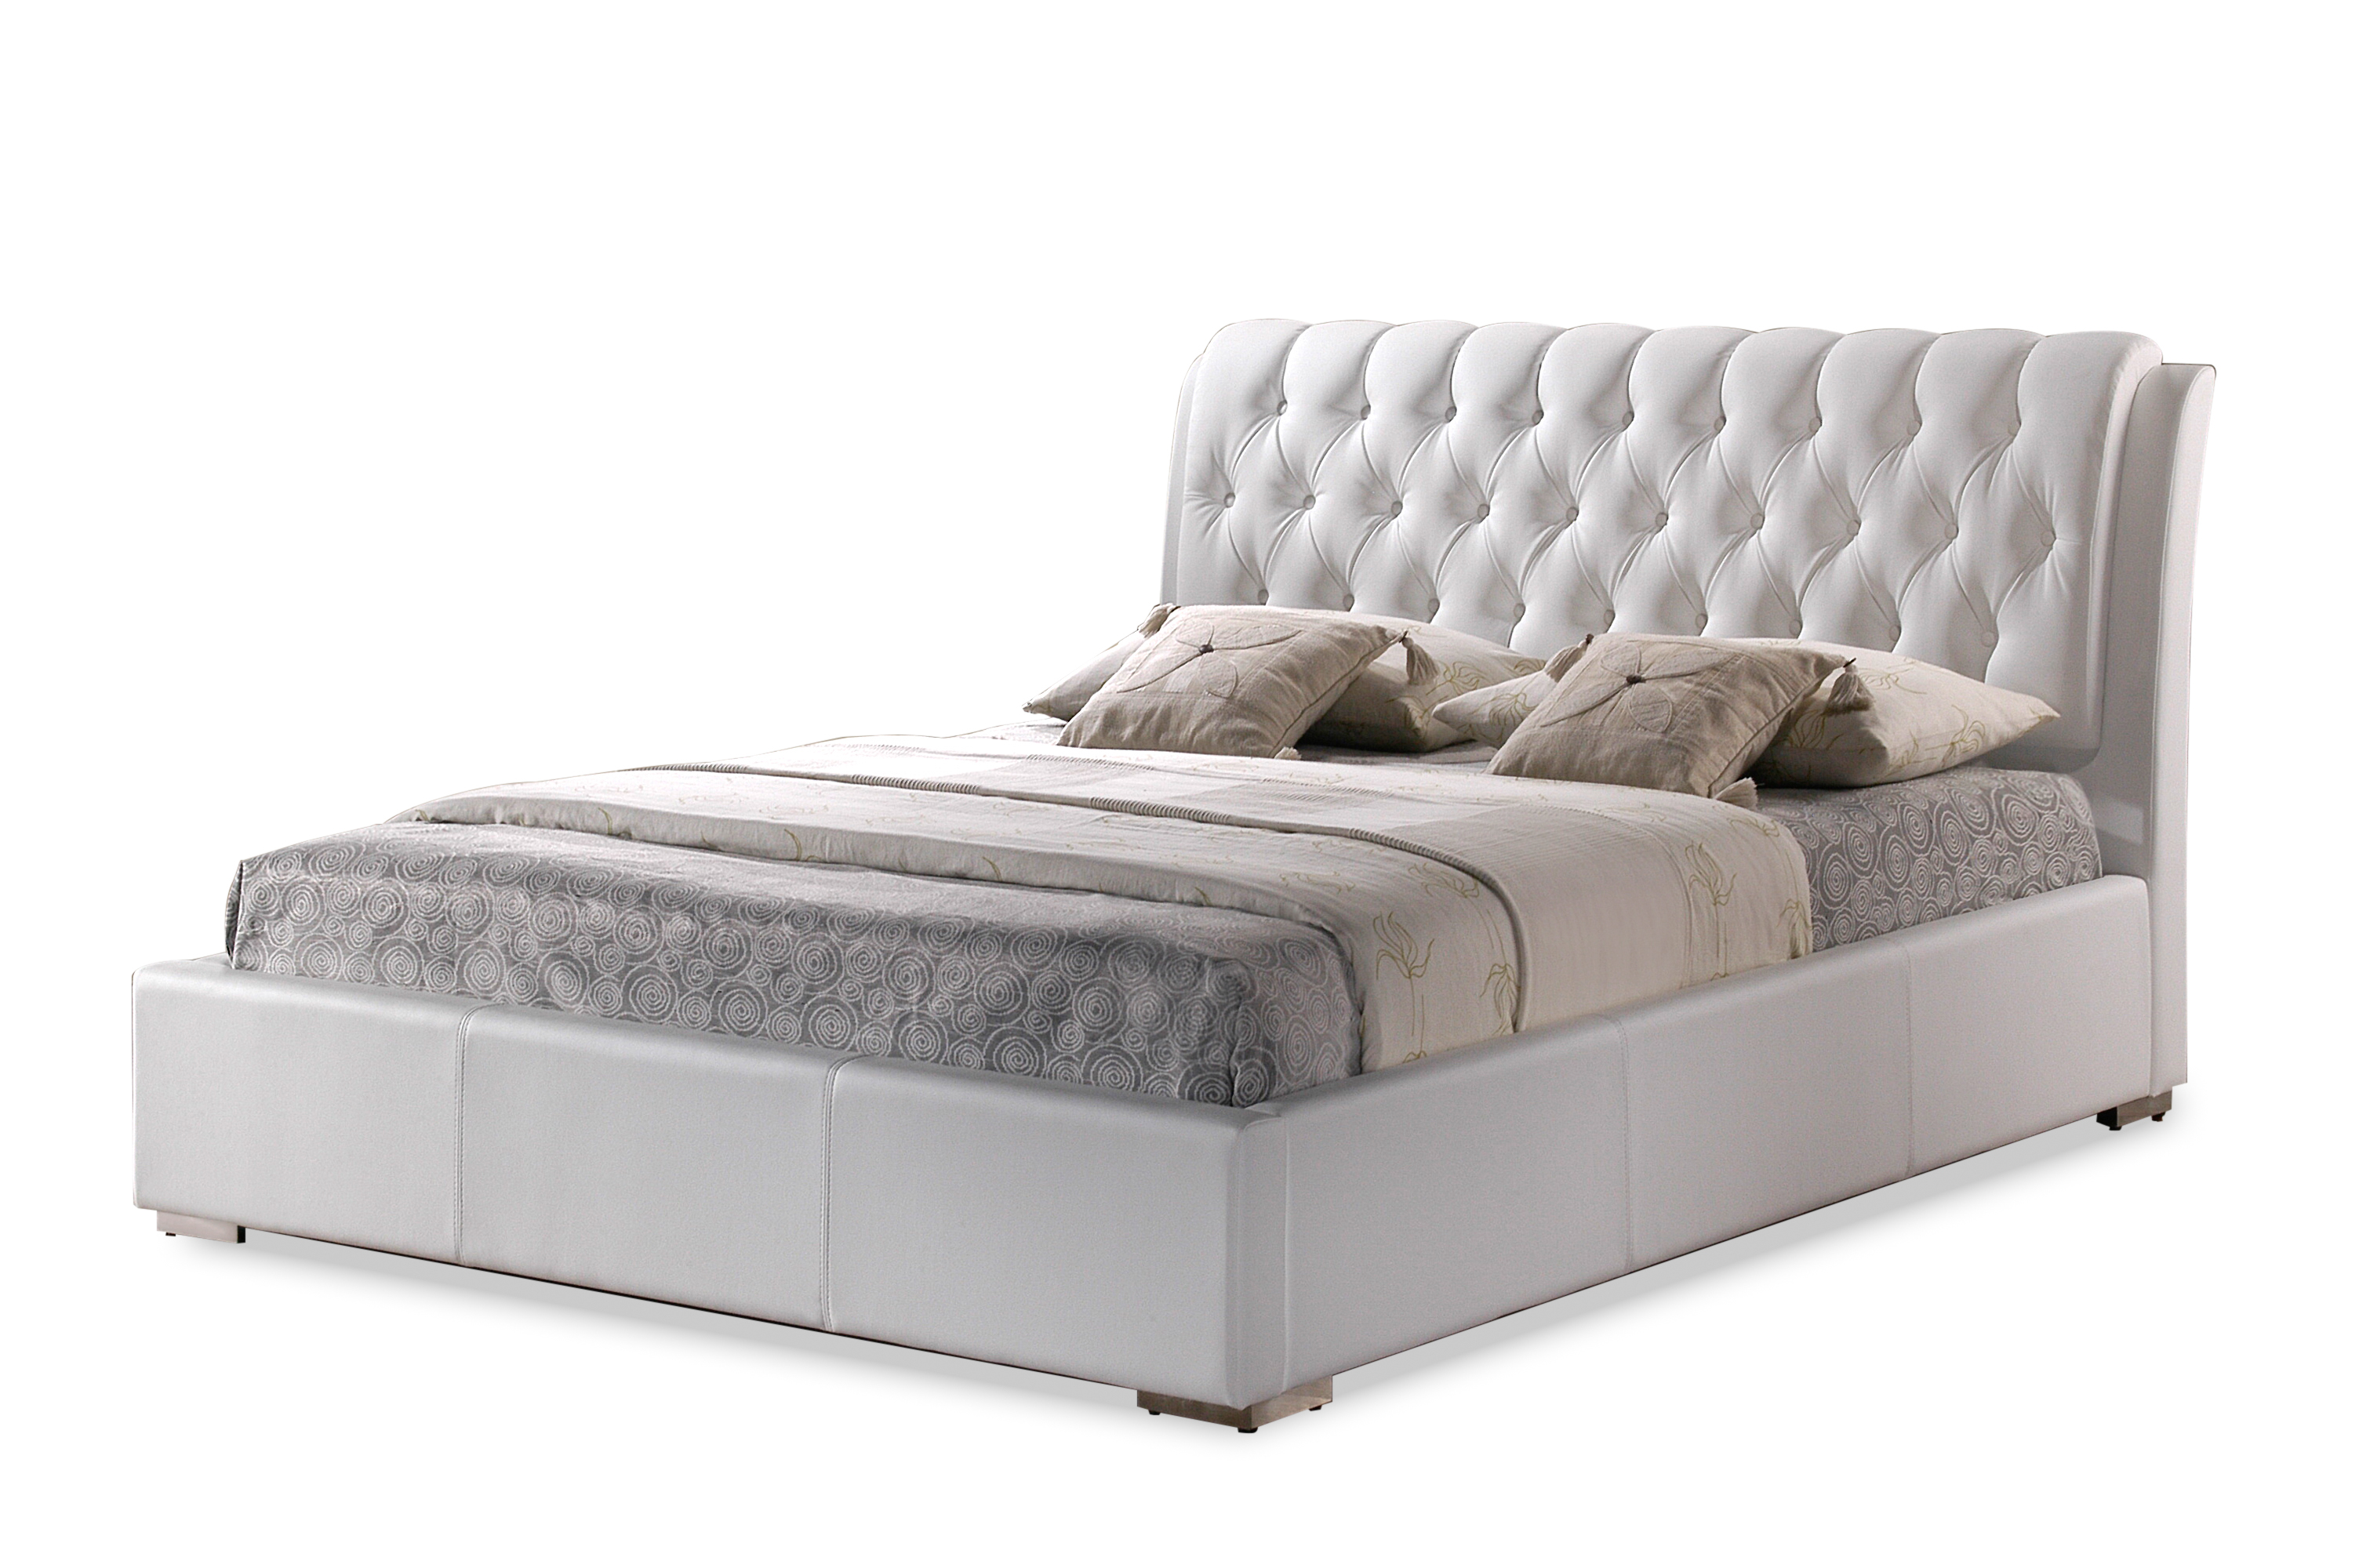 Baxton Studio Bianca White Modern Bed With Tufted Headboard Full